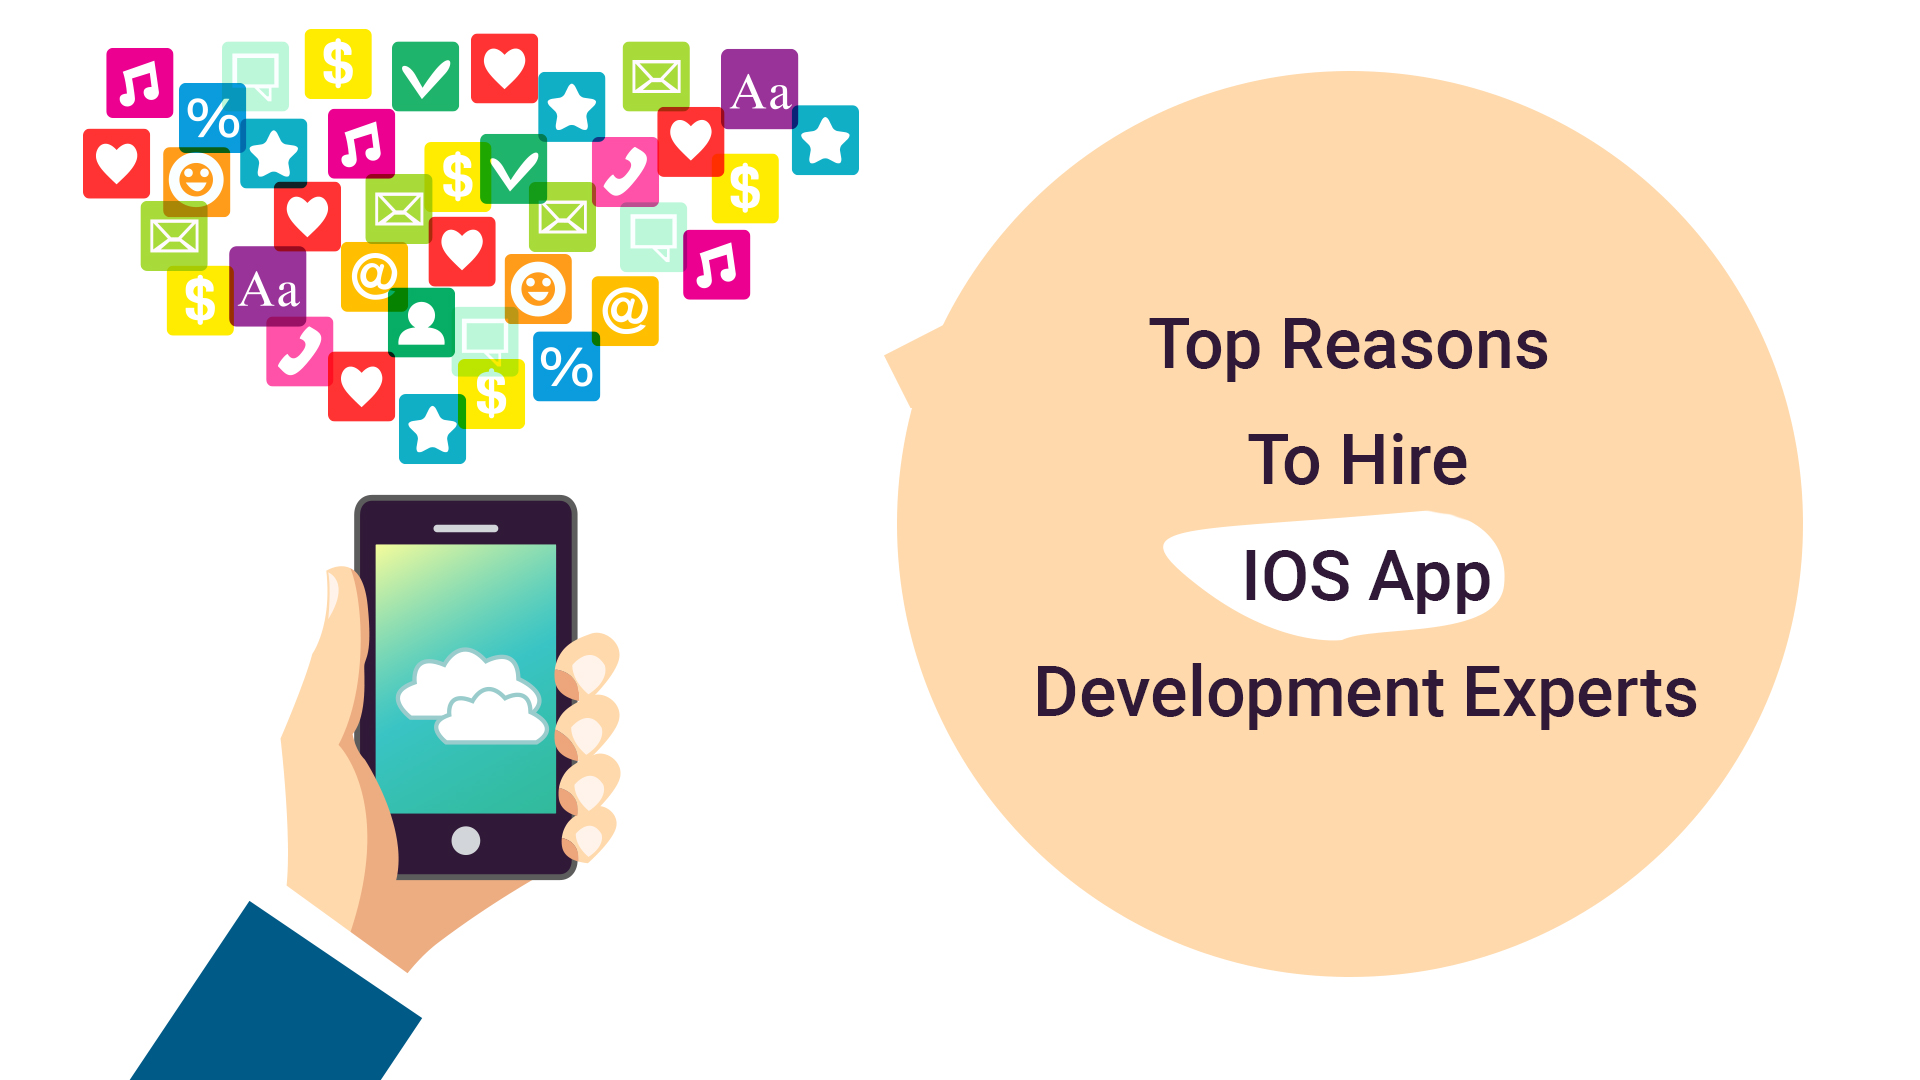 Top Reasons To Hire iOS App Development Experts